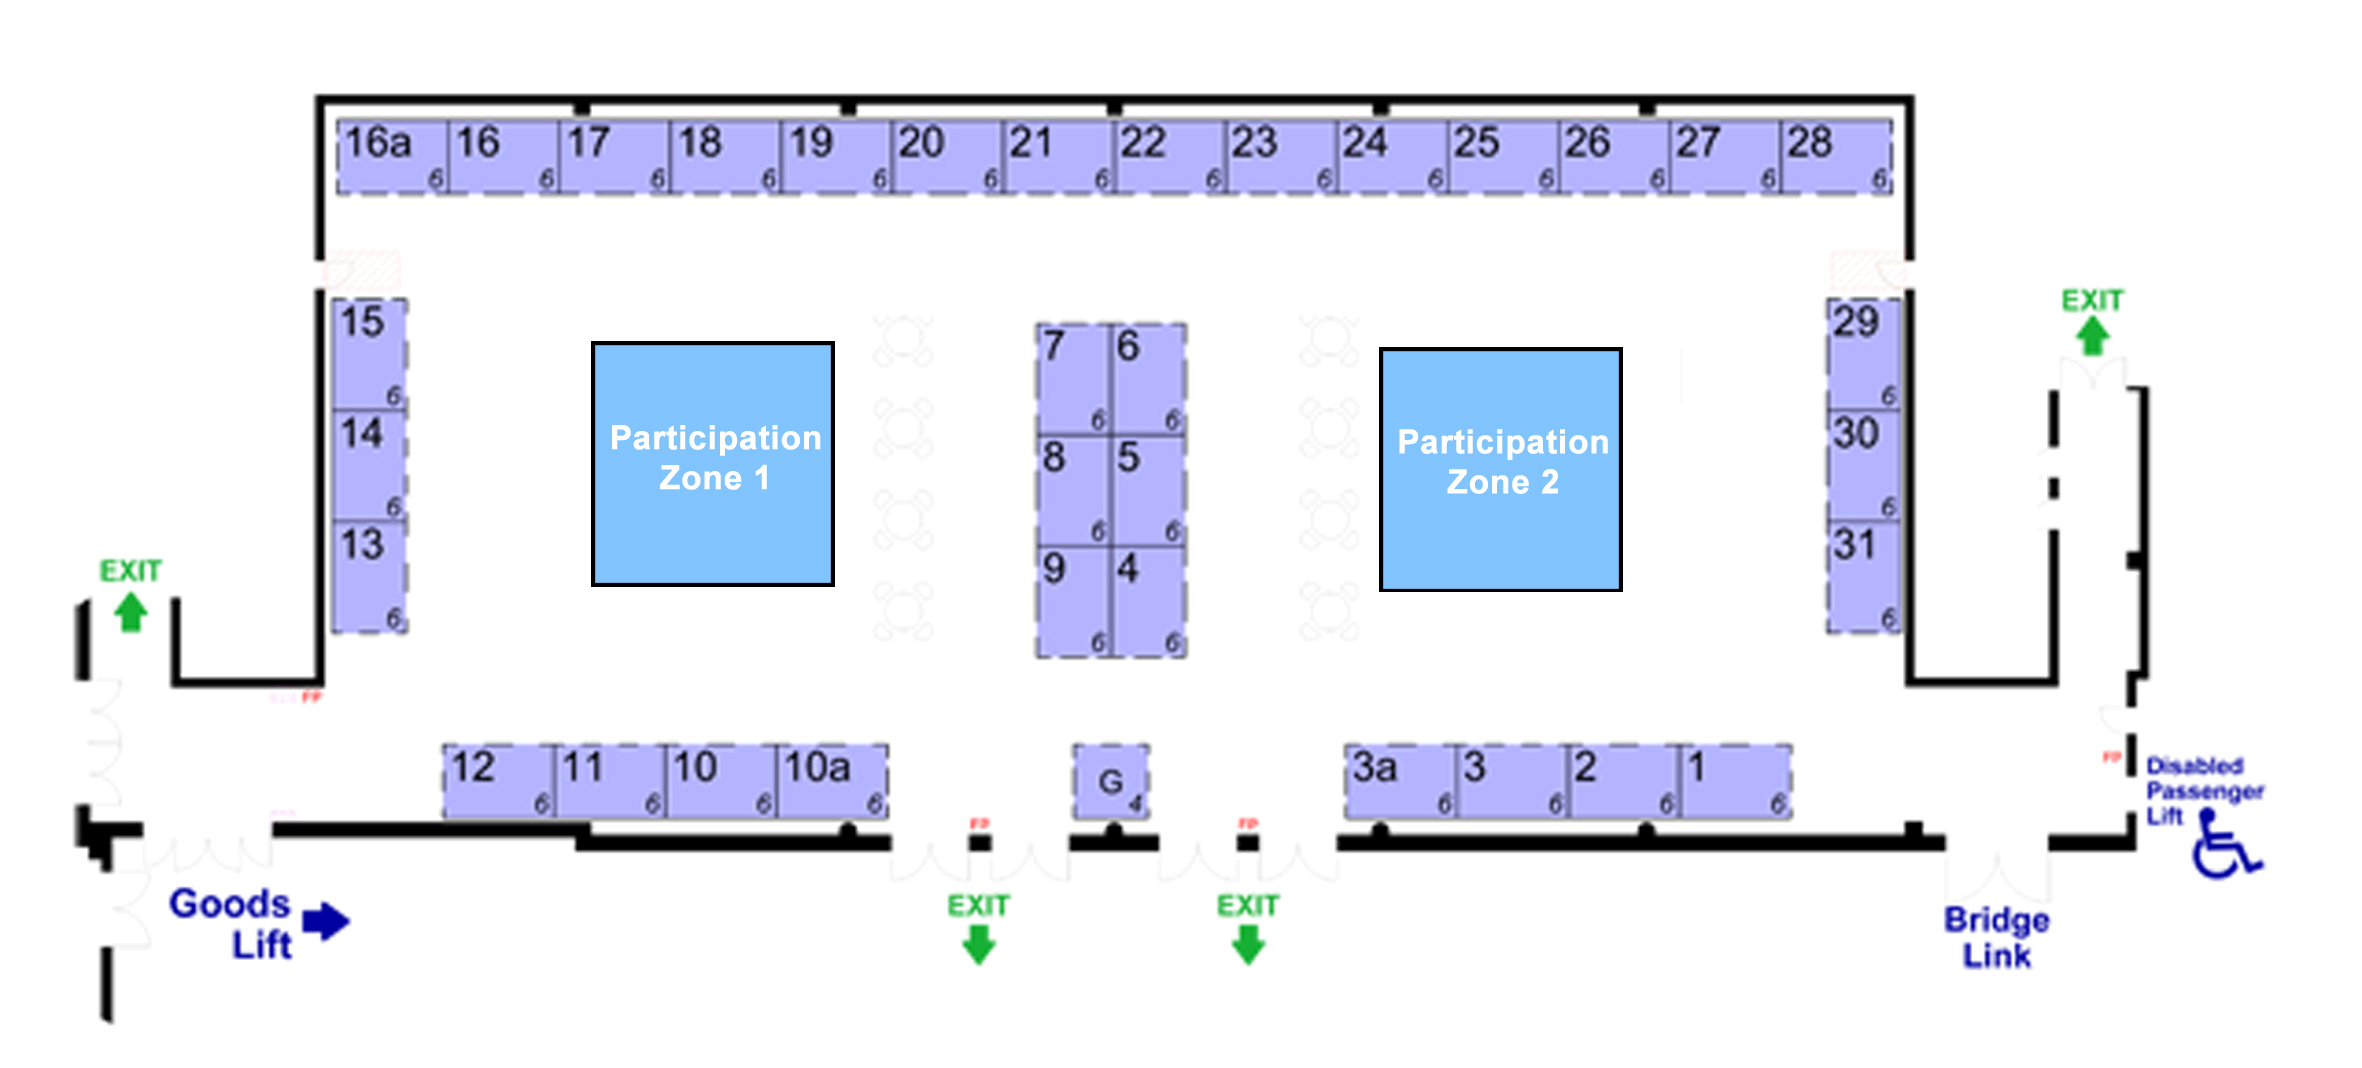 New Year's Resolution Show Floor Plan